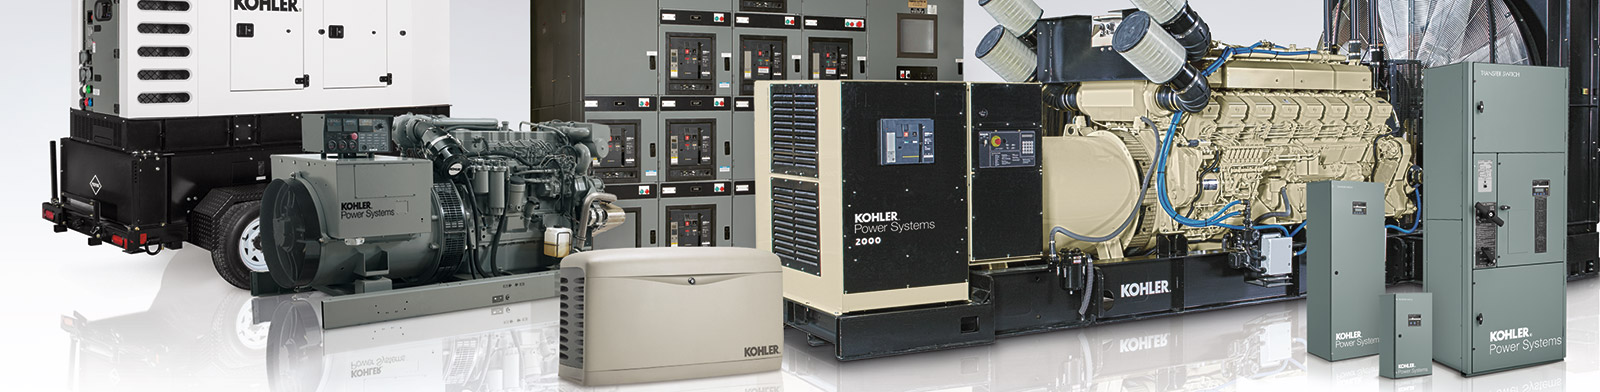 Essential kohler generator technical documents taw power for Design home resources generator